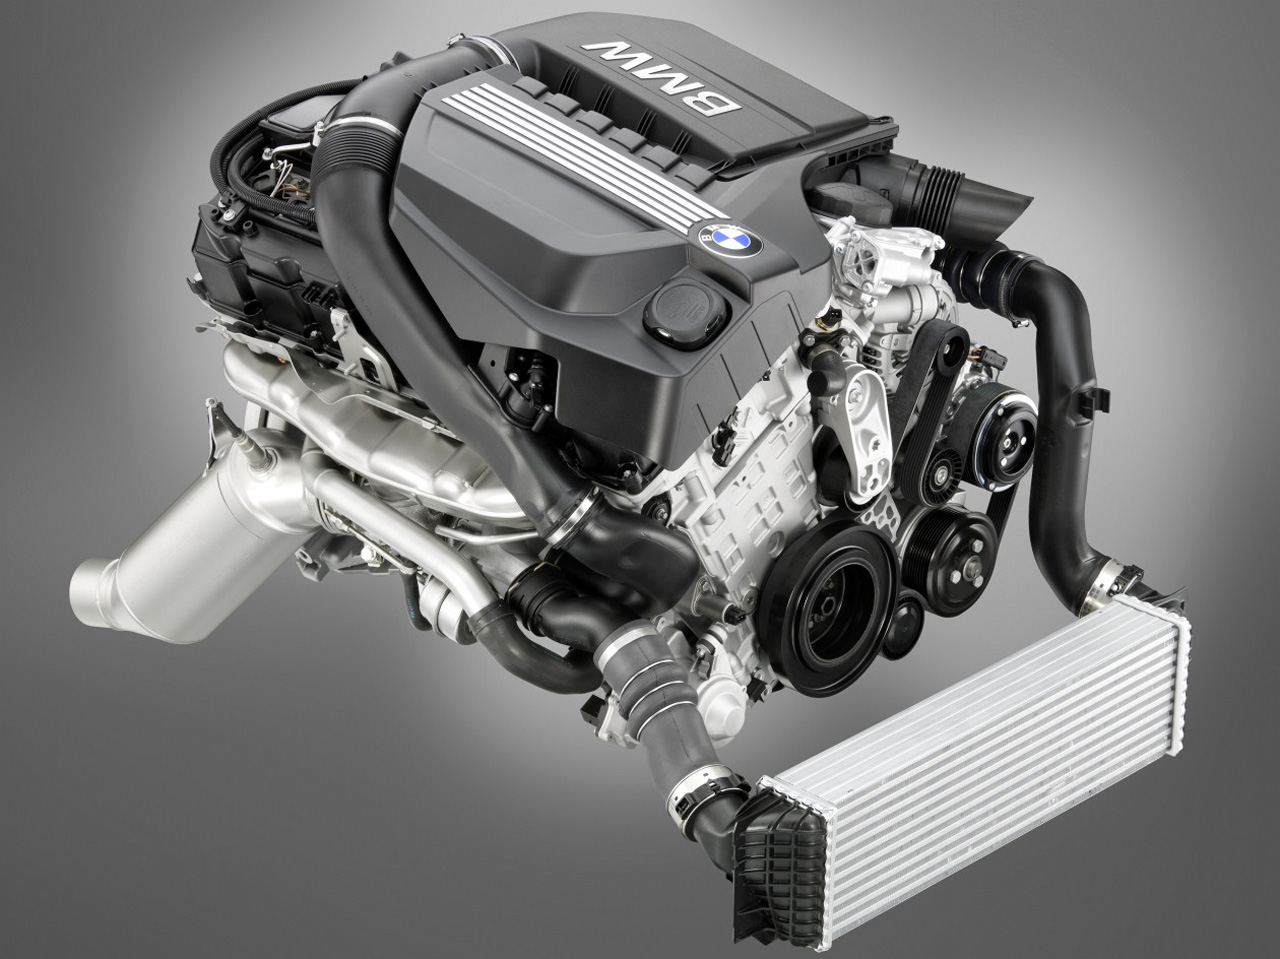 hight resolution of bmw n55 engine 011 750x561